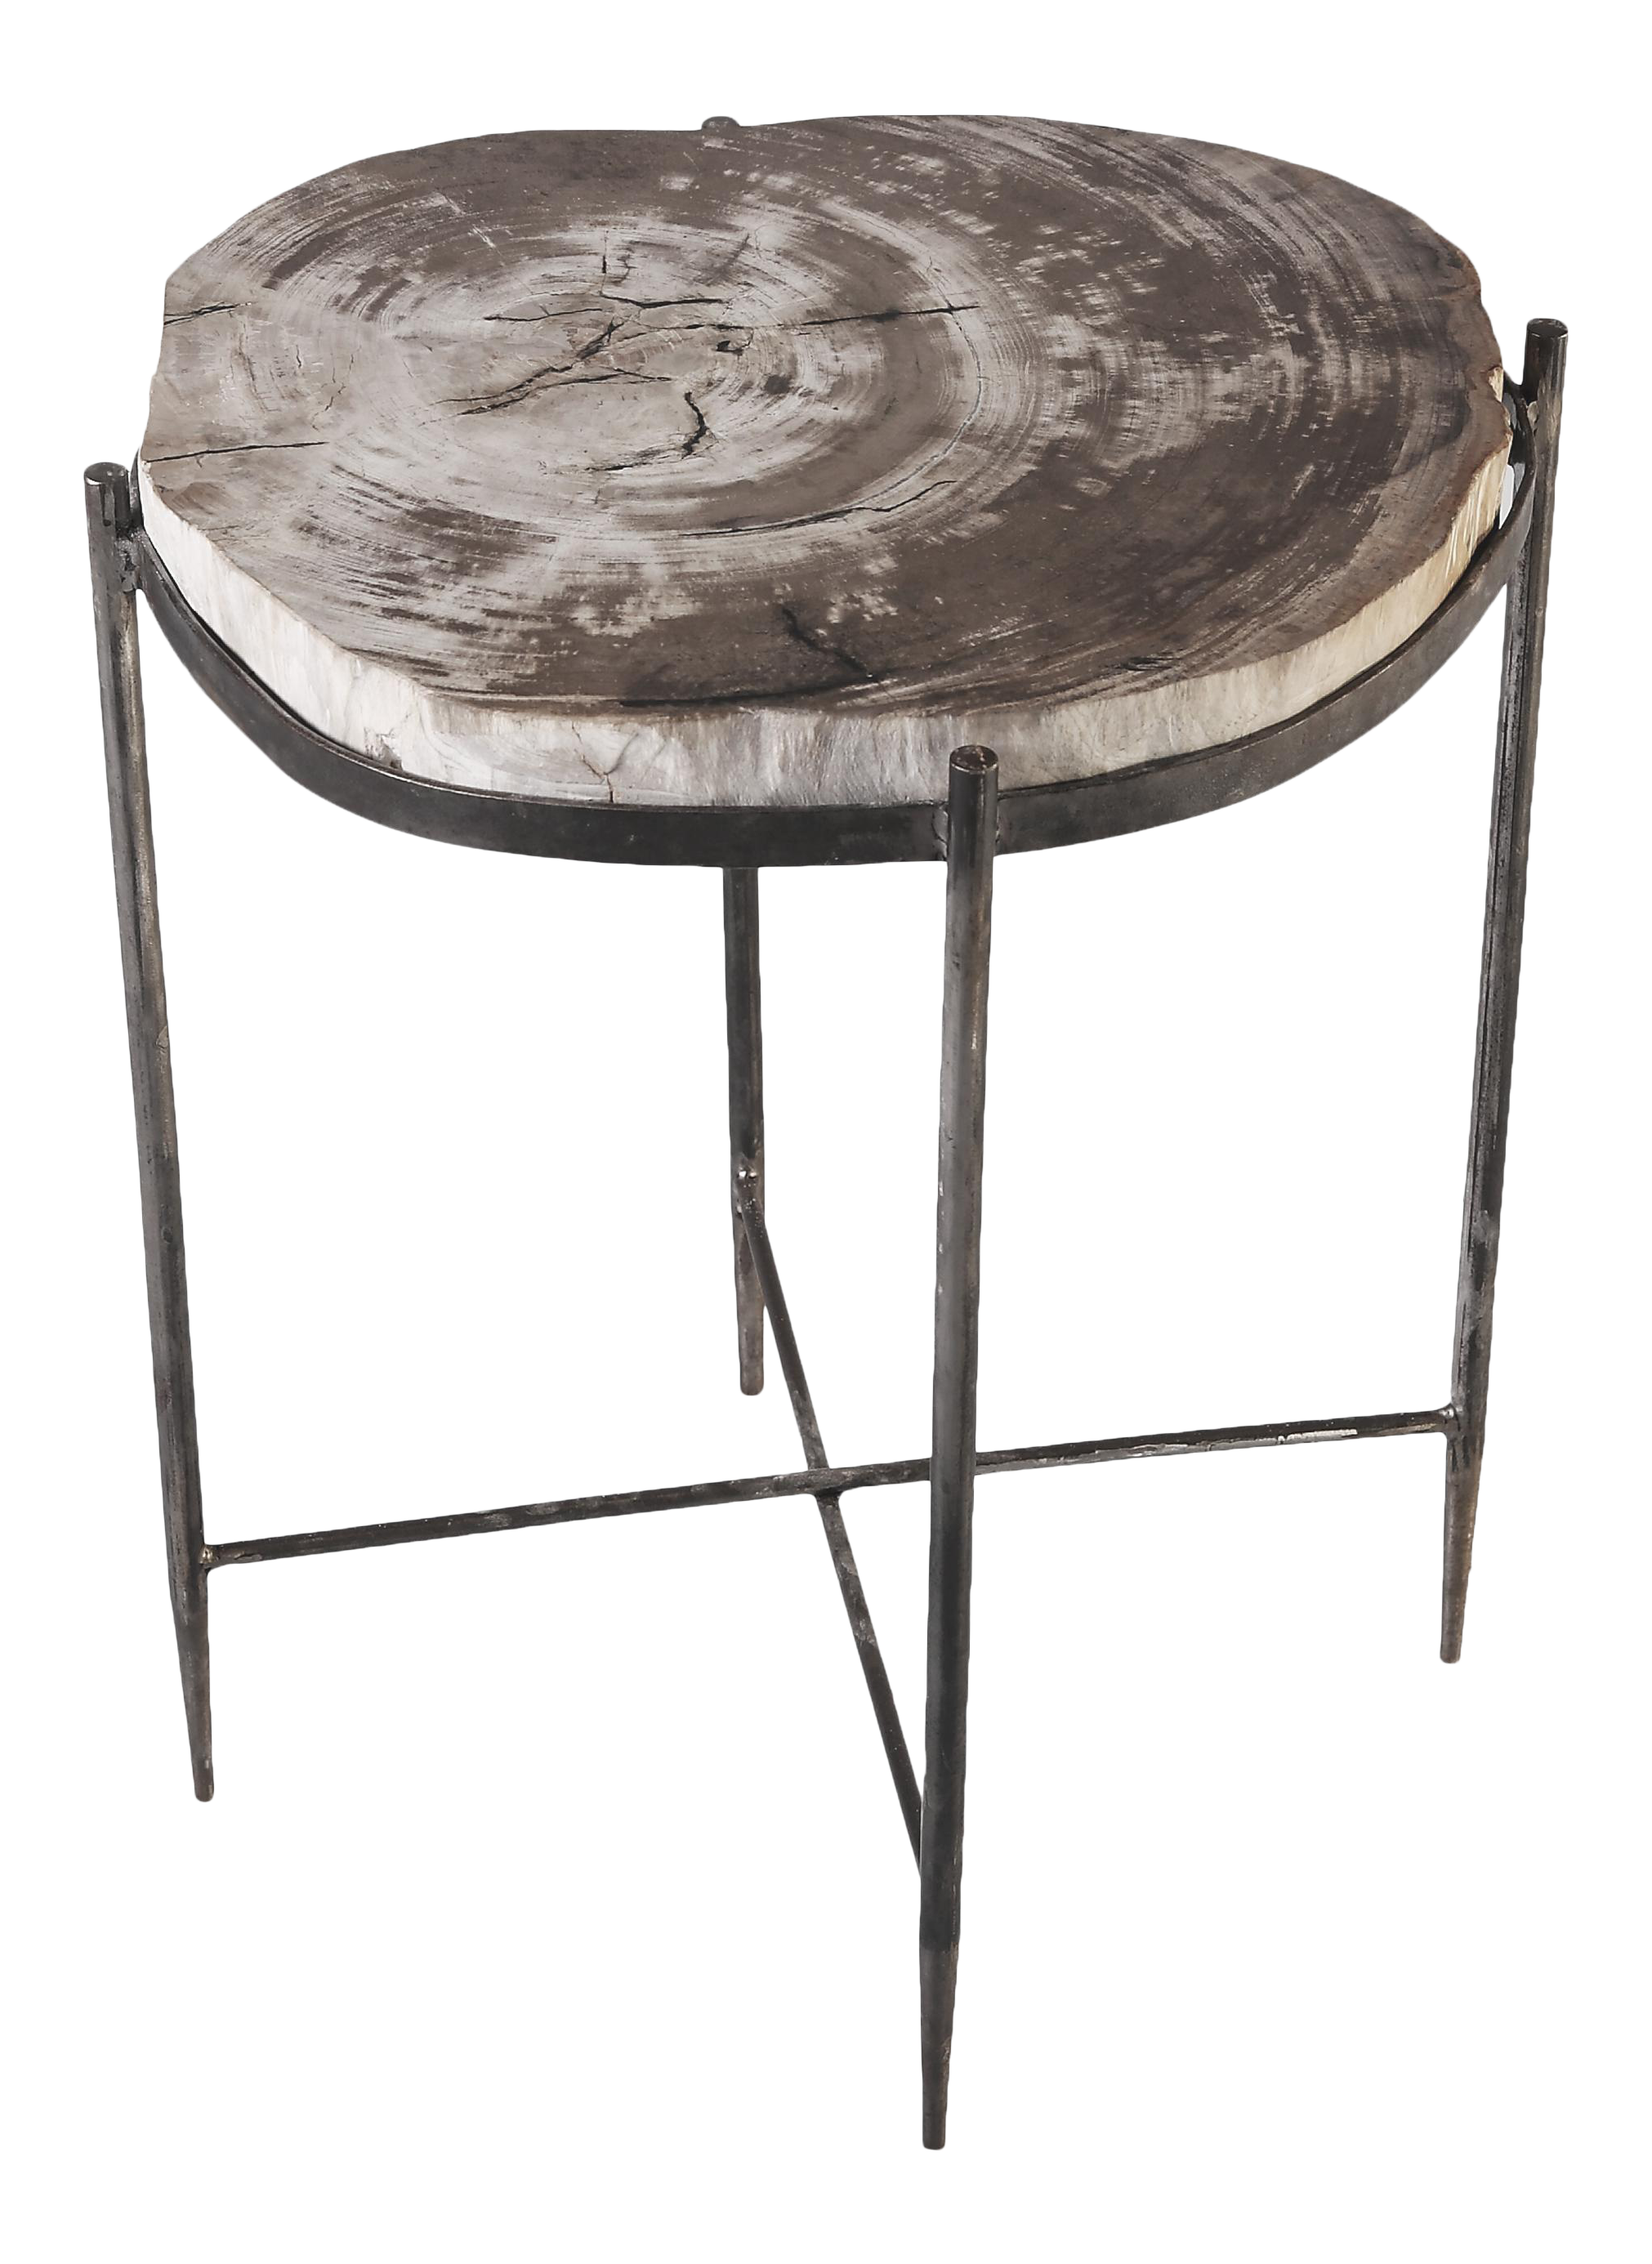 - Organic Modern Round Living Edge Petrified Wood Top Accent Table